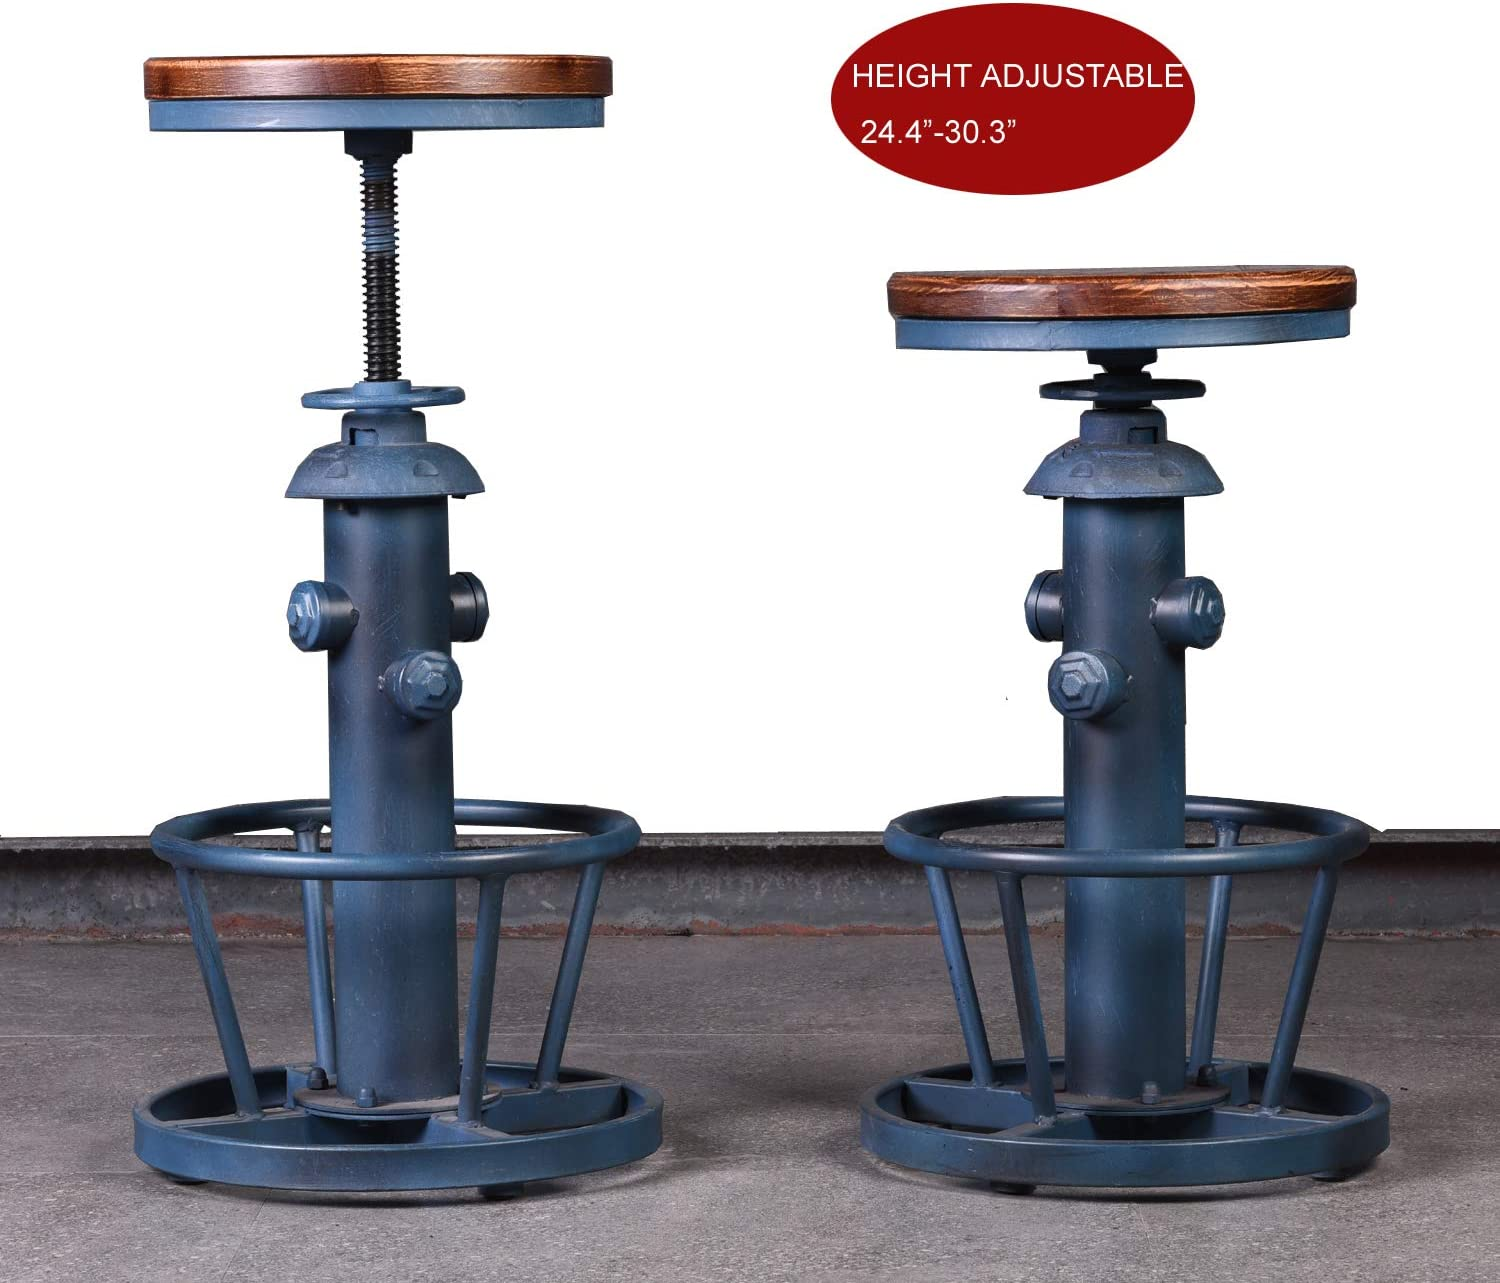 Topower Aged Steampunk Deco Industrial Round Bottom Adjustable Height Cafe Coffee Retro Vintage Fire Hydrant Design Pub Kitchen Counter Bar Stool